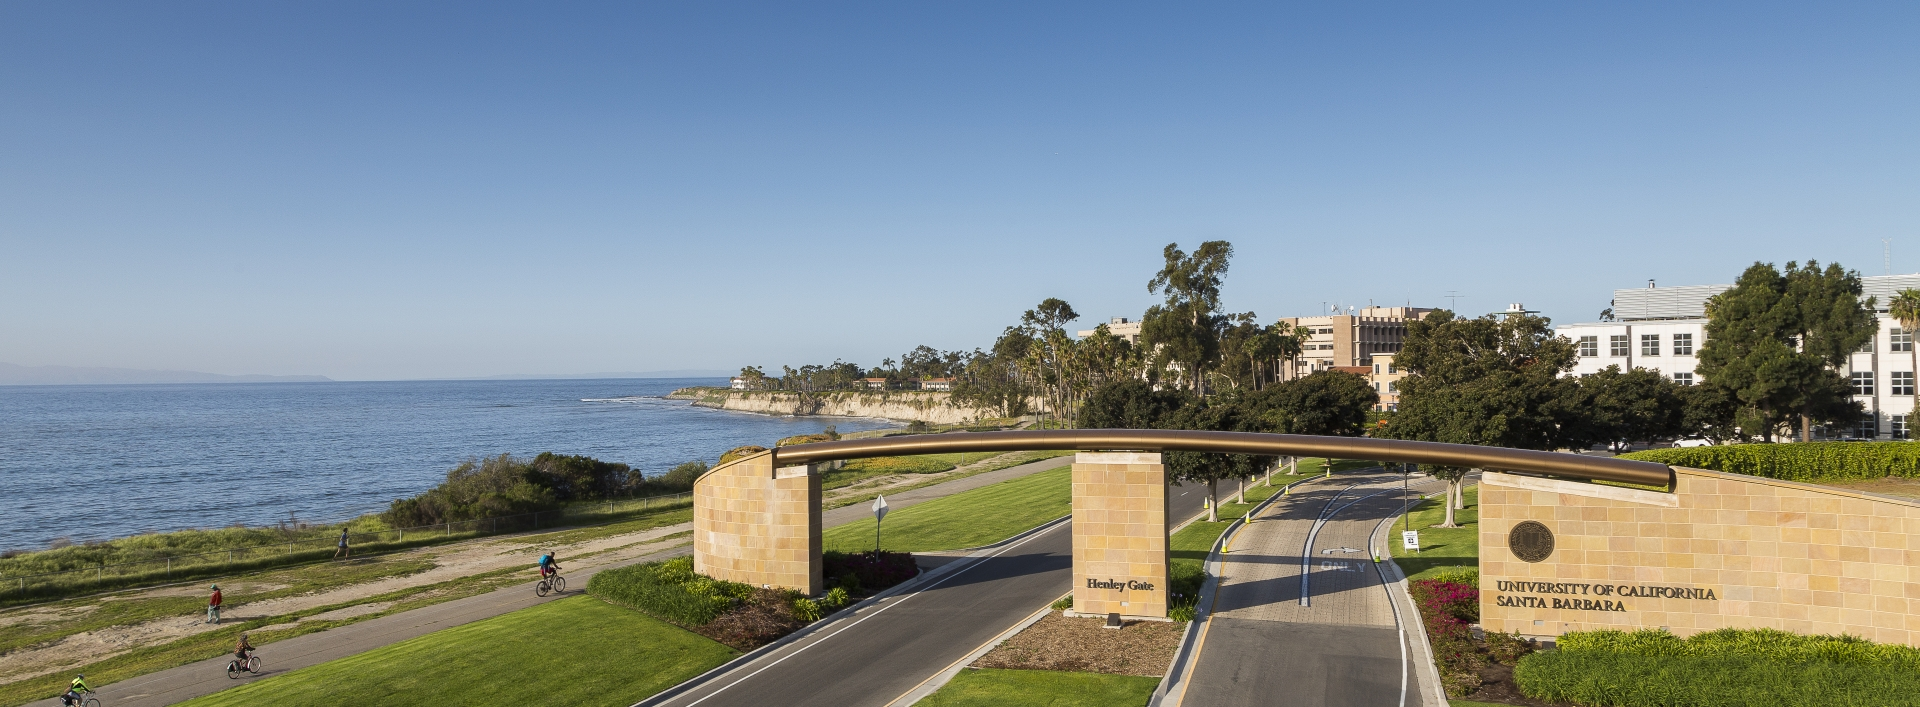 UCSB campus entrance by the beach